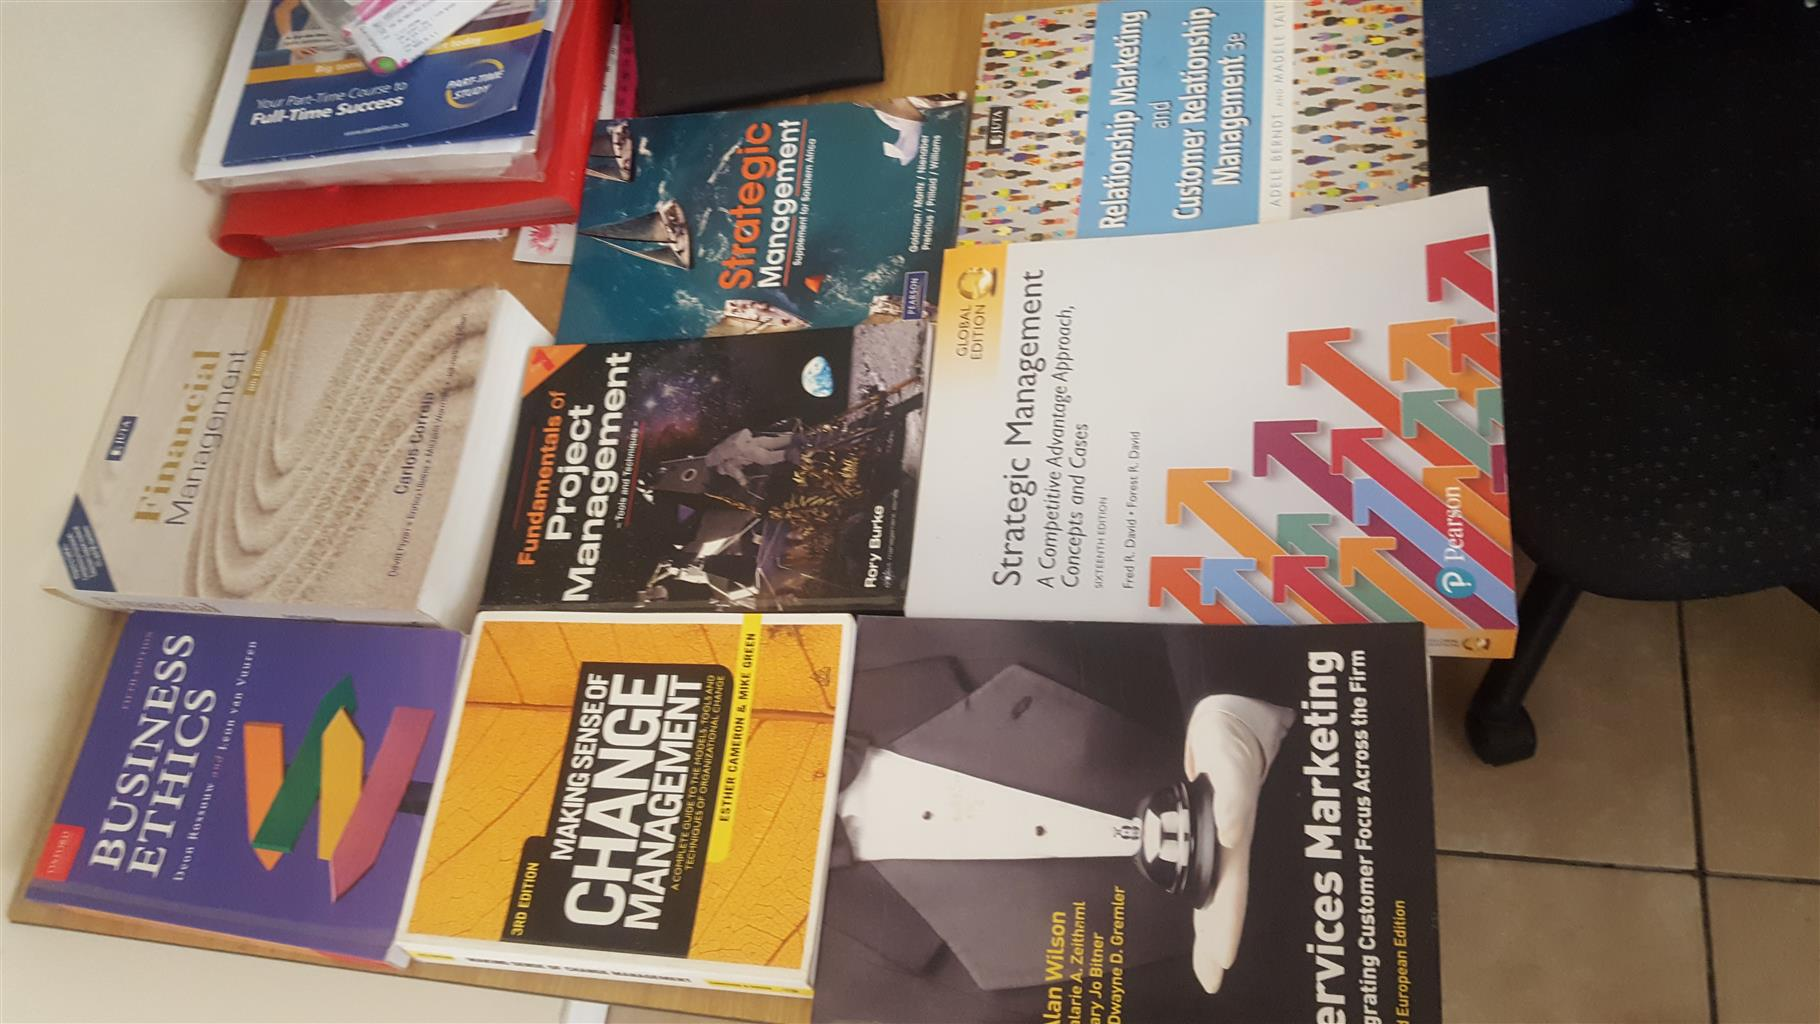 All 3rd year bcom management and marketing  textbooks